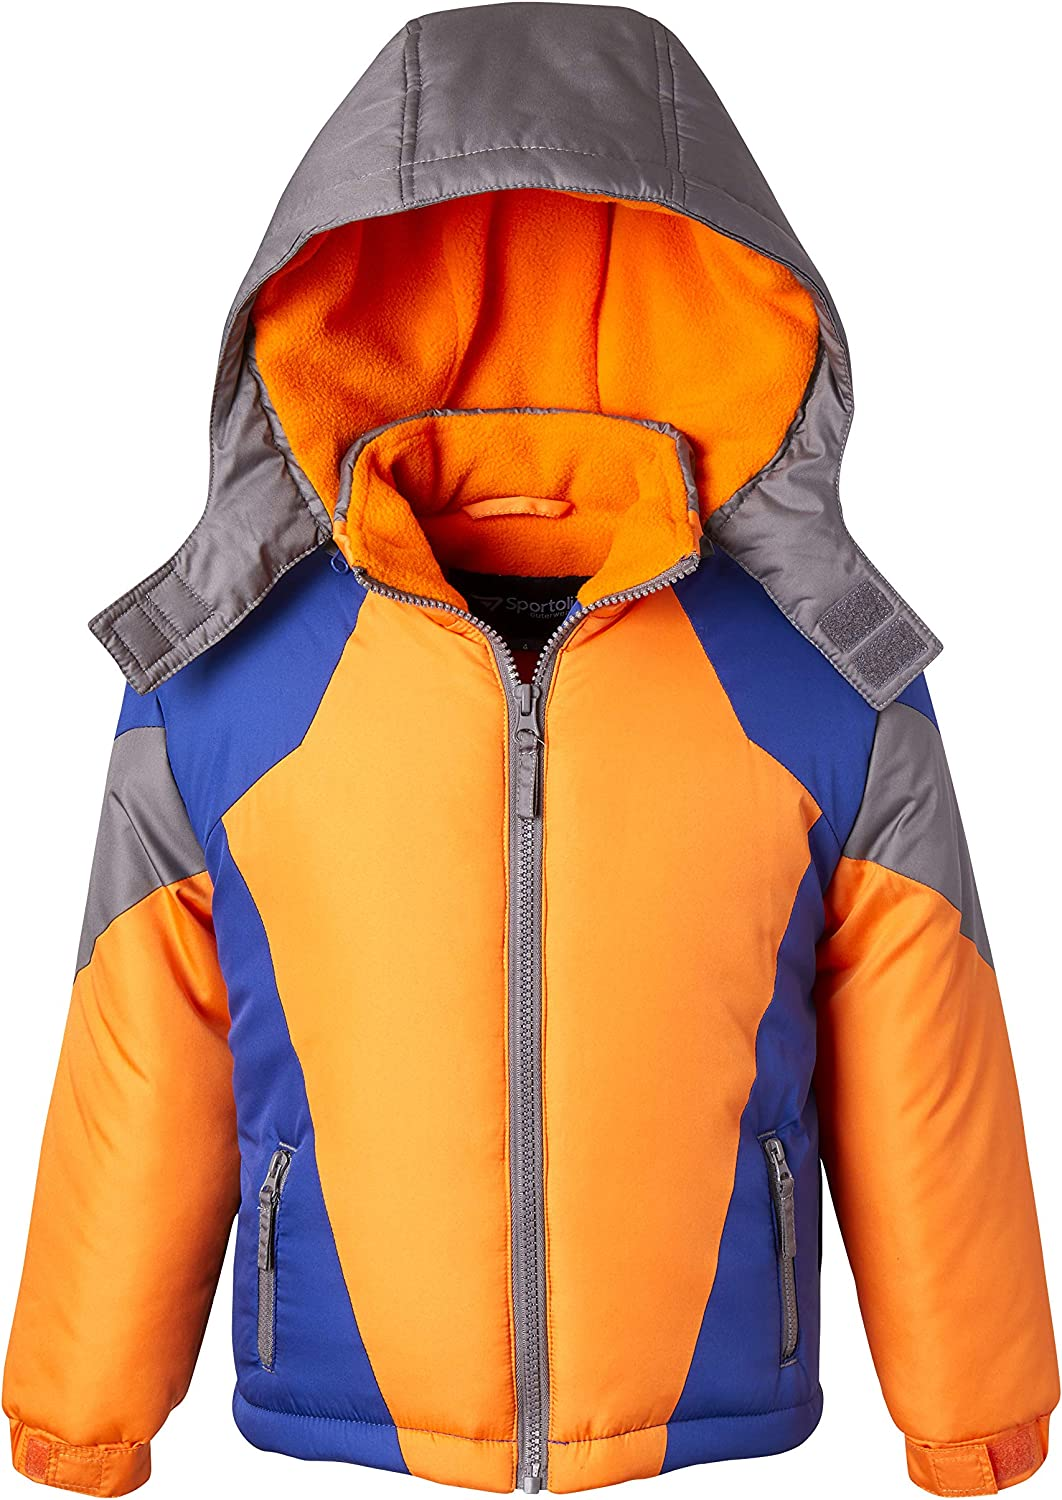 Coats for Boys Fleece Superior Lined Hooded Winter Long-awaited Colorblock Snowboard P